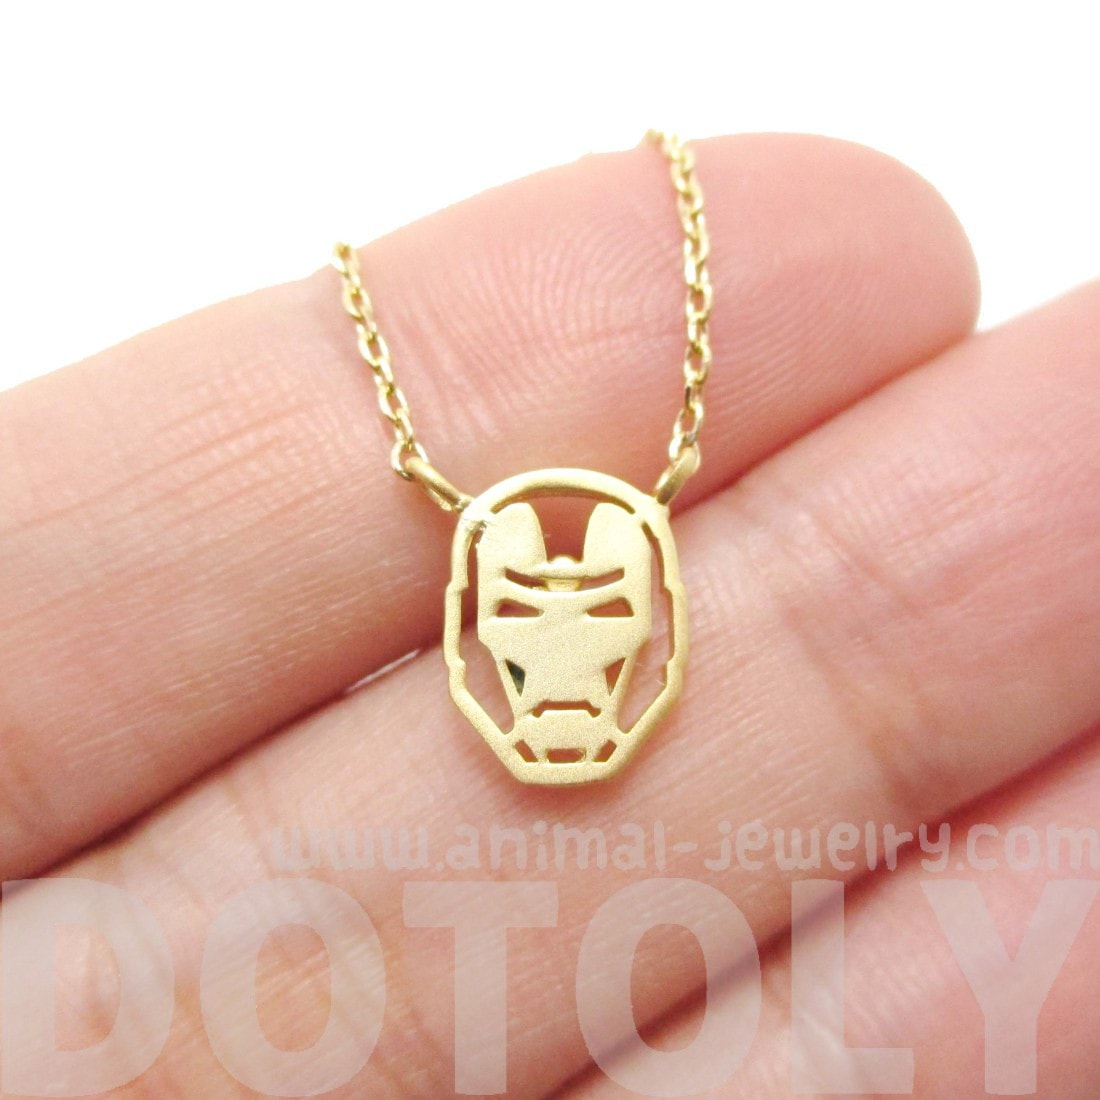 Marvel Iron Man Mask Shaped Pendant Necklace in Gold